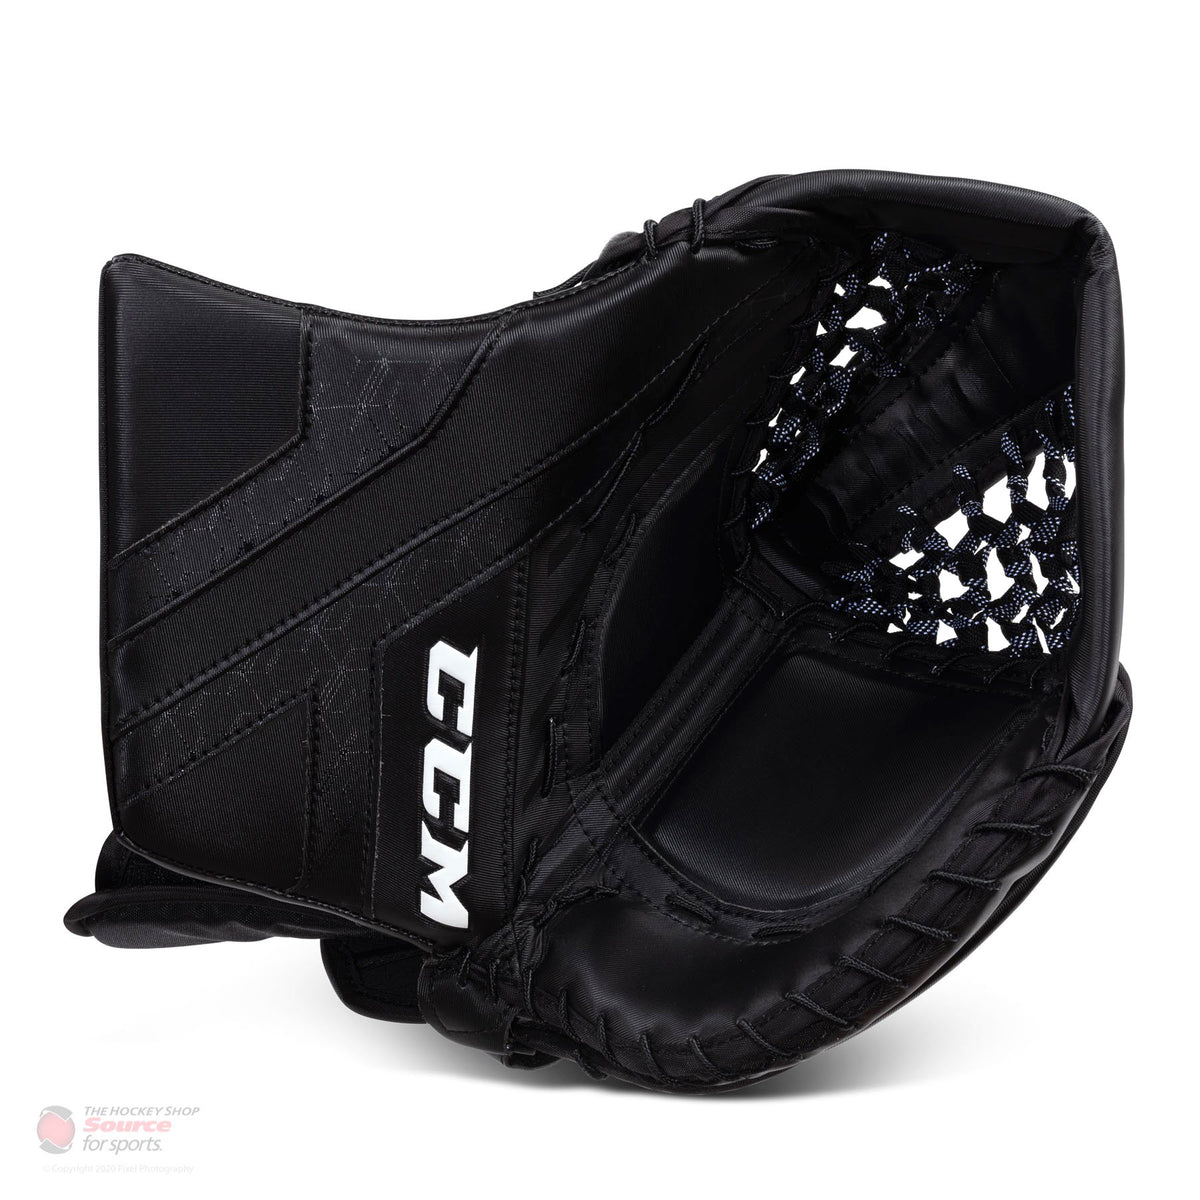 CCM Axis A1.9 Senior Goalie Catcher - Source Exclusive